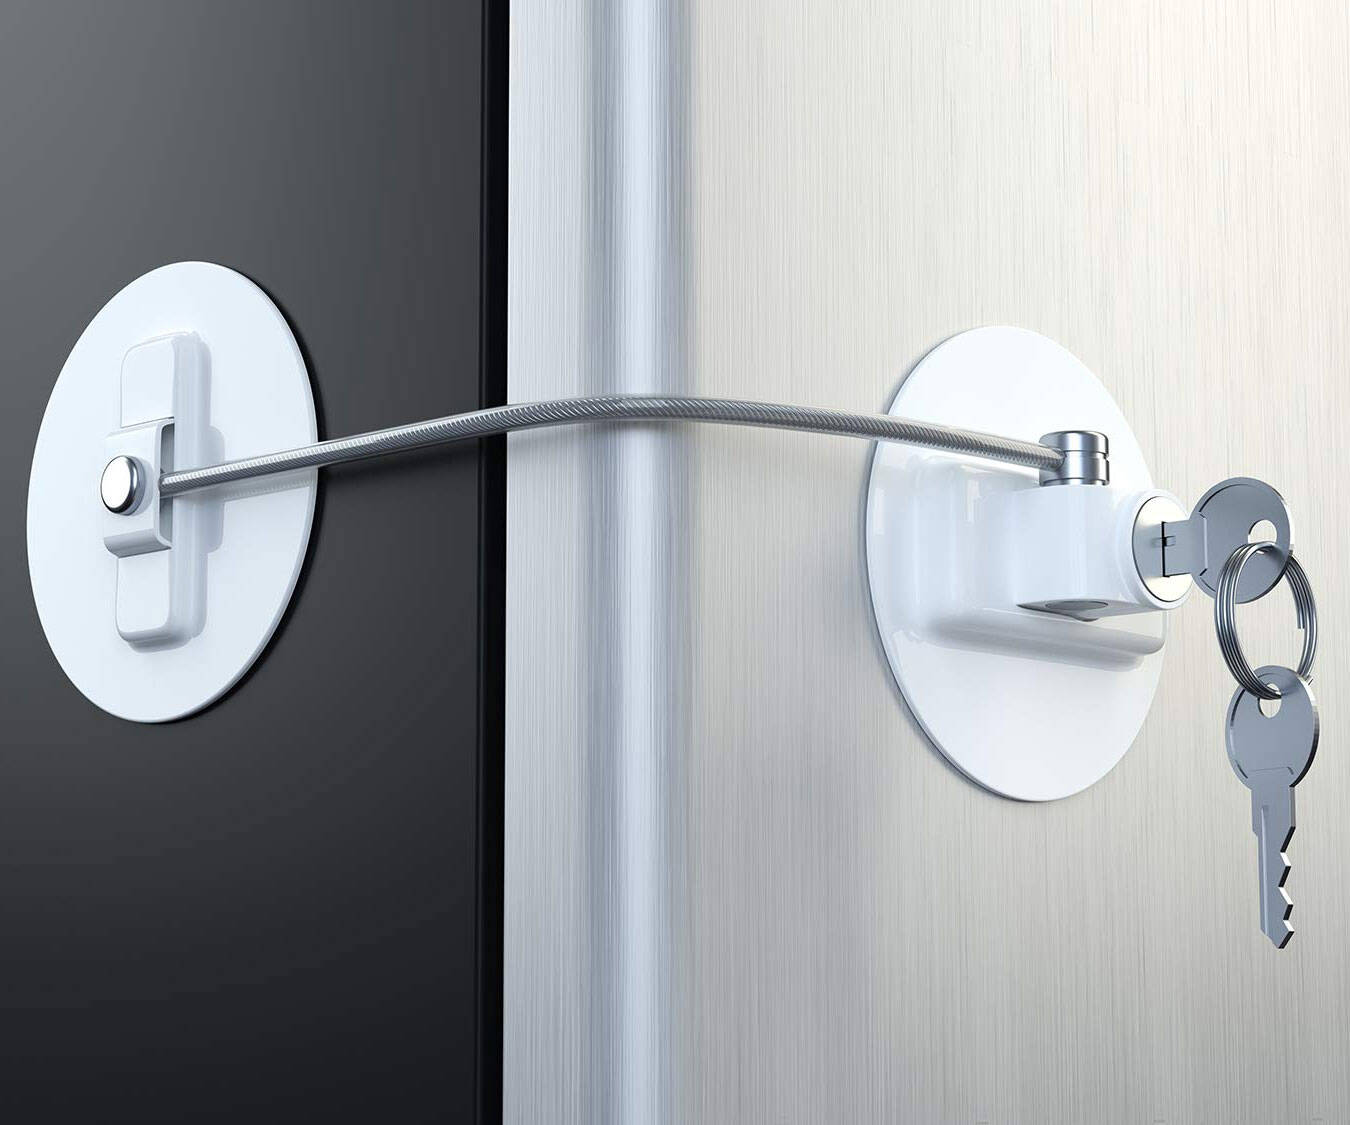 Refrigerator Lock - http://coolthings.us